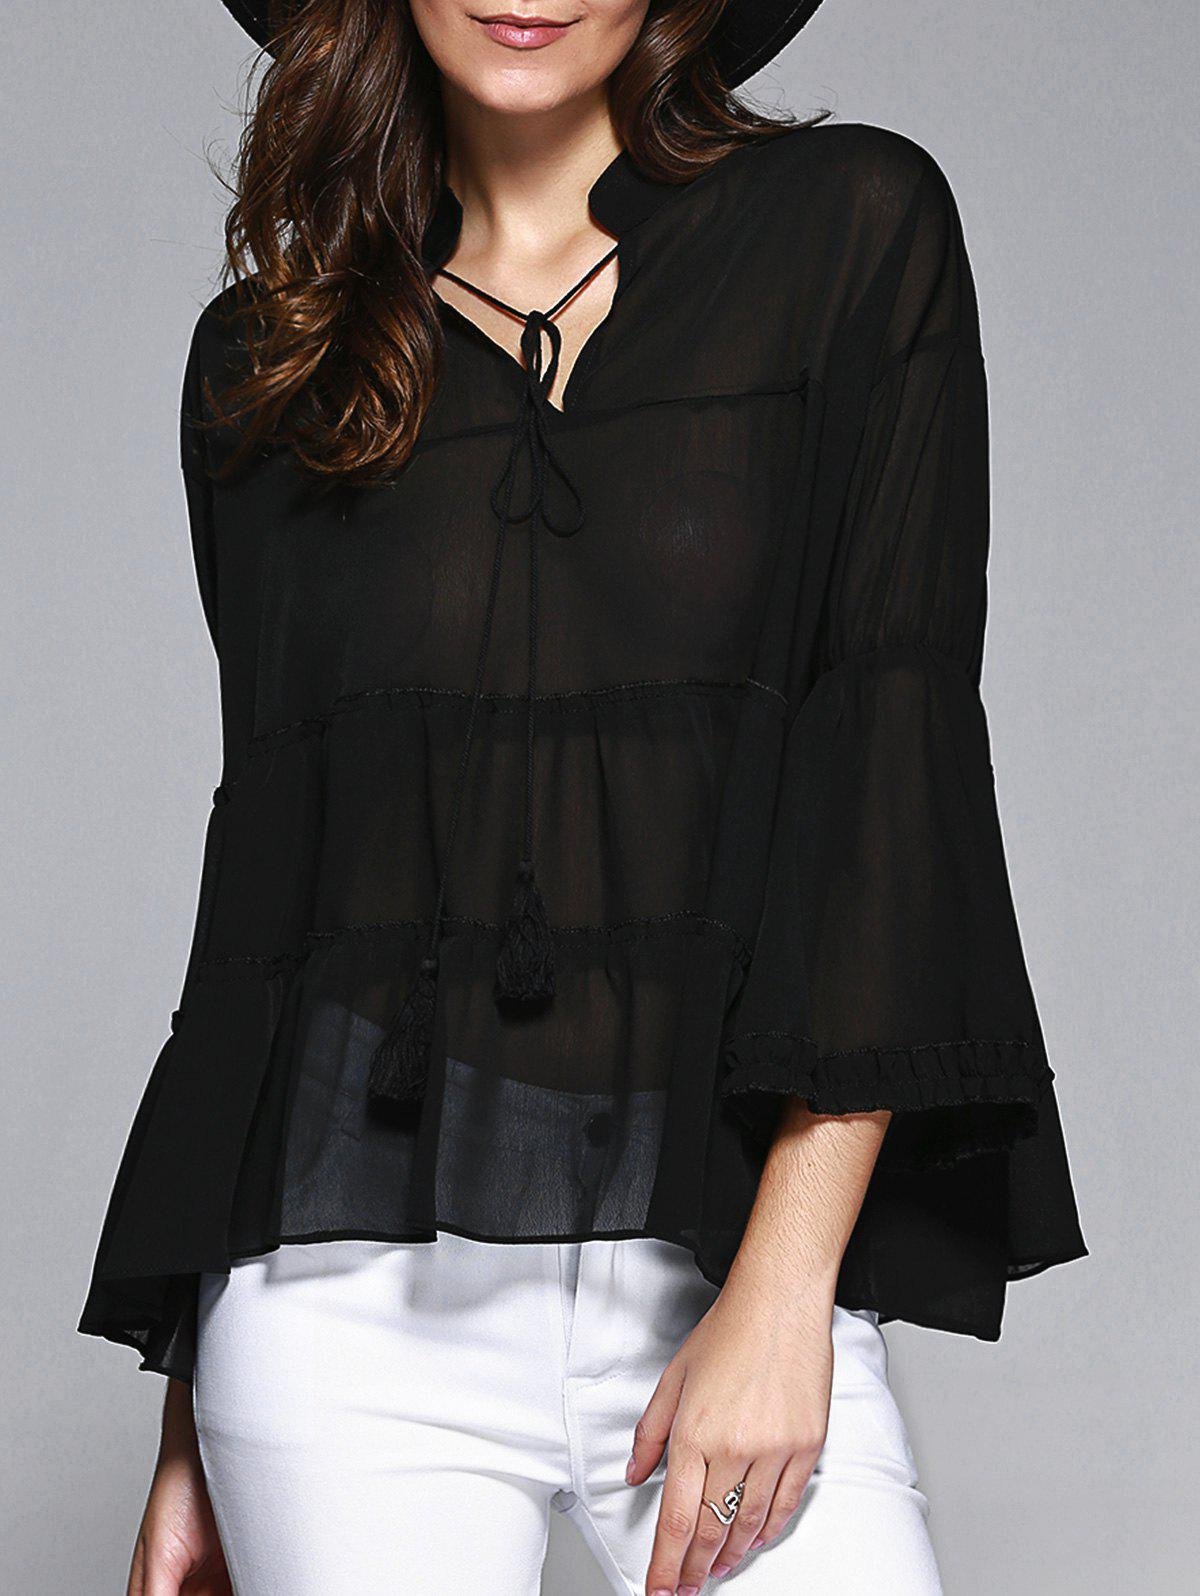 Sweet Women's Plus Size Bell Sleeves Flounced Blouse - BLACK 5XL